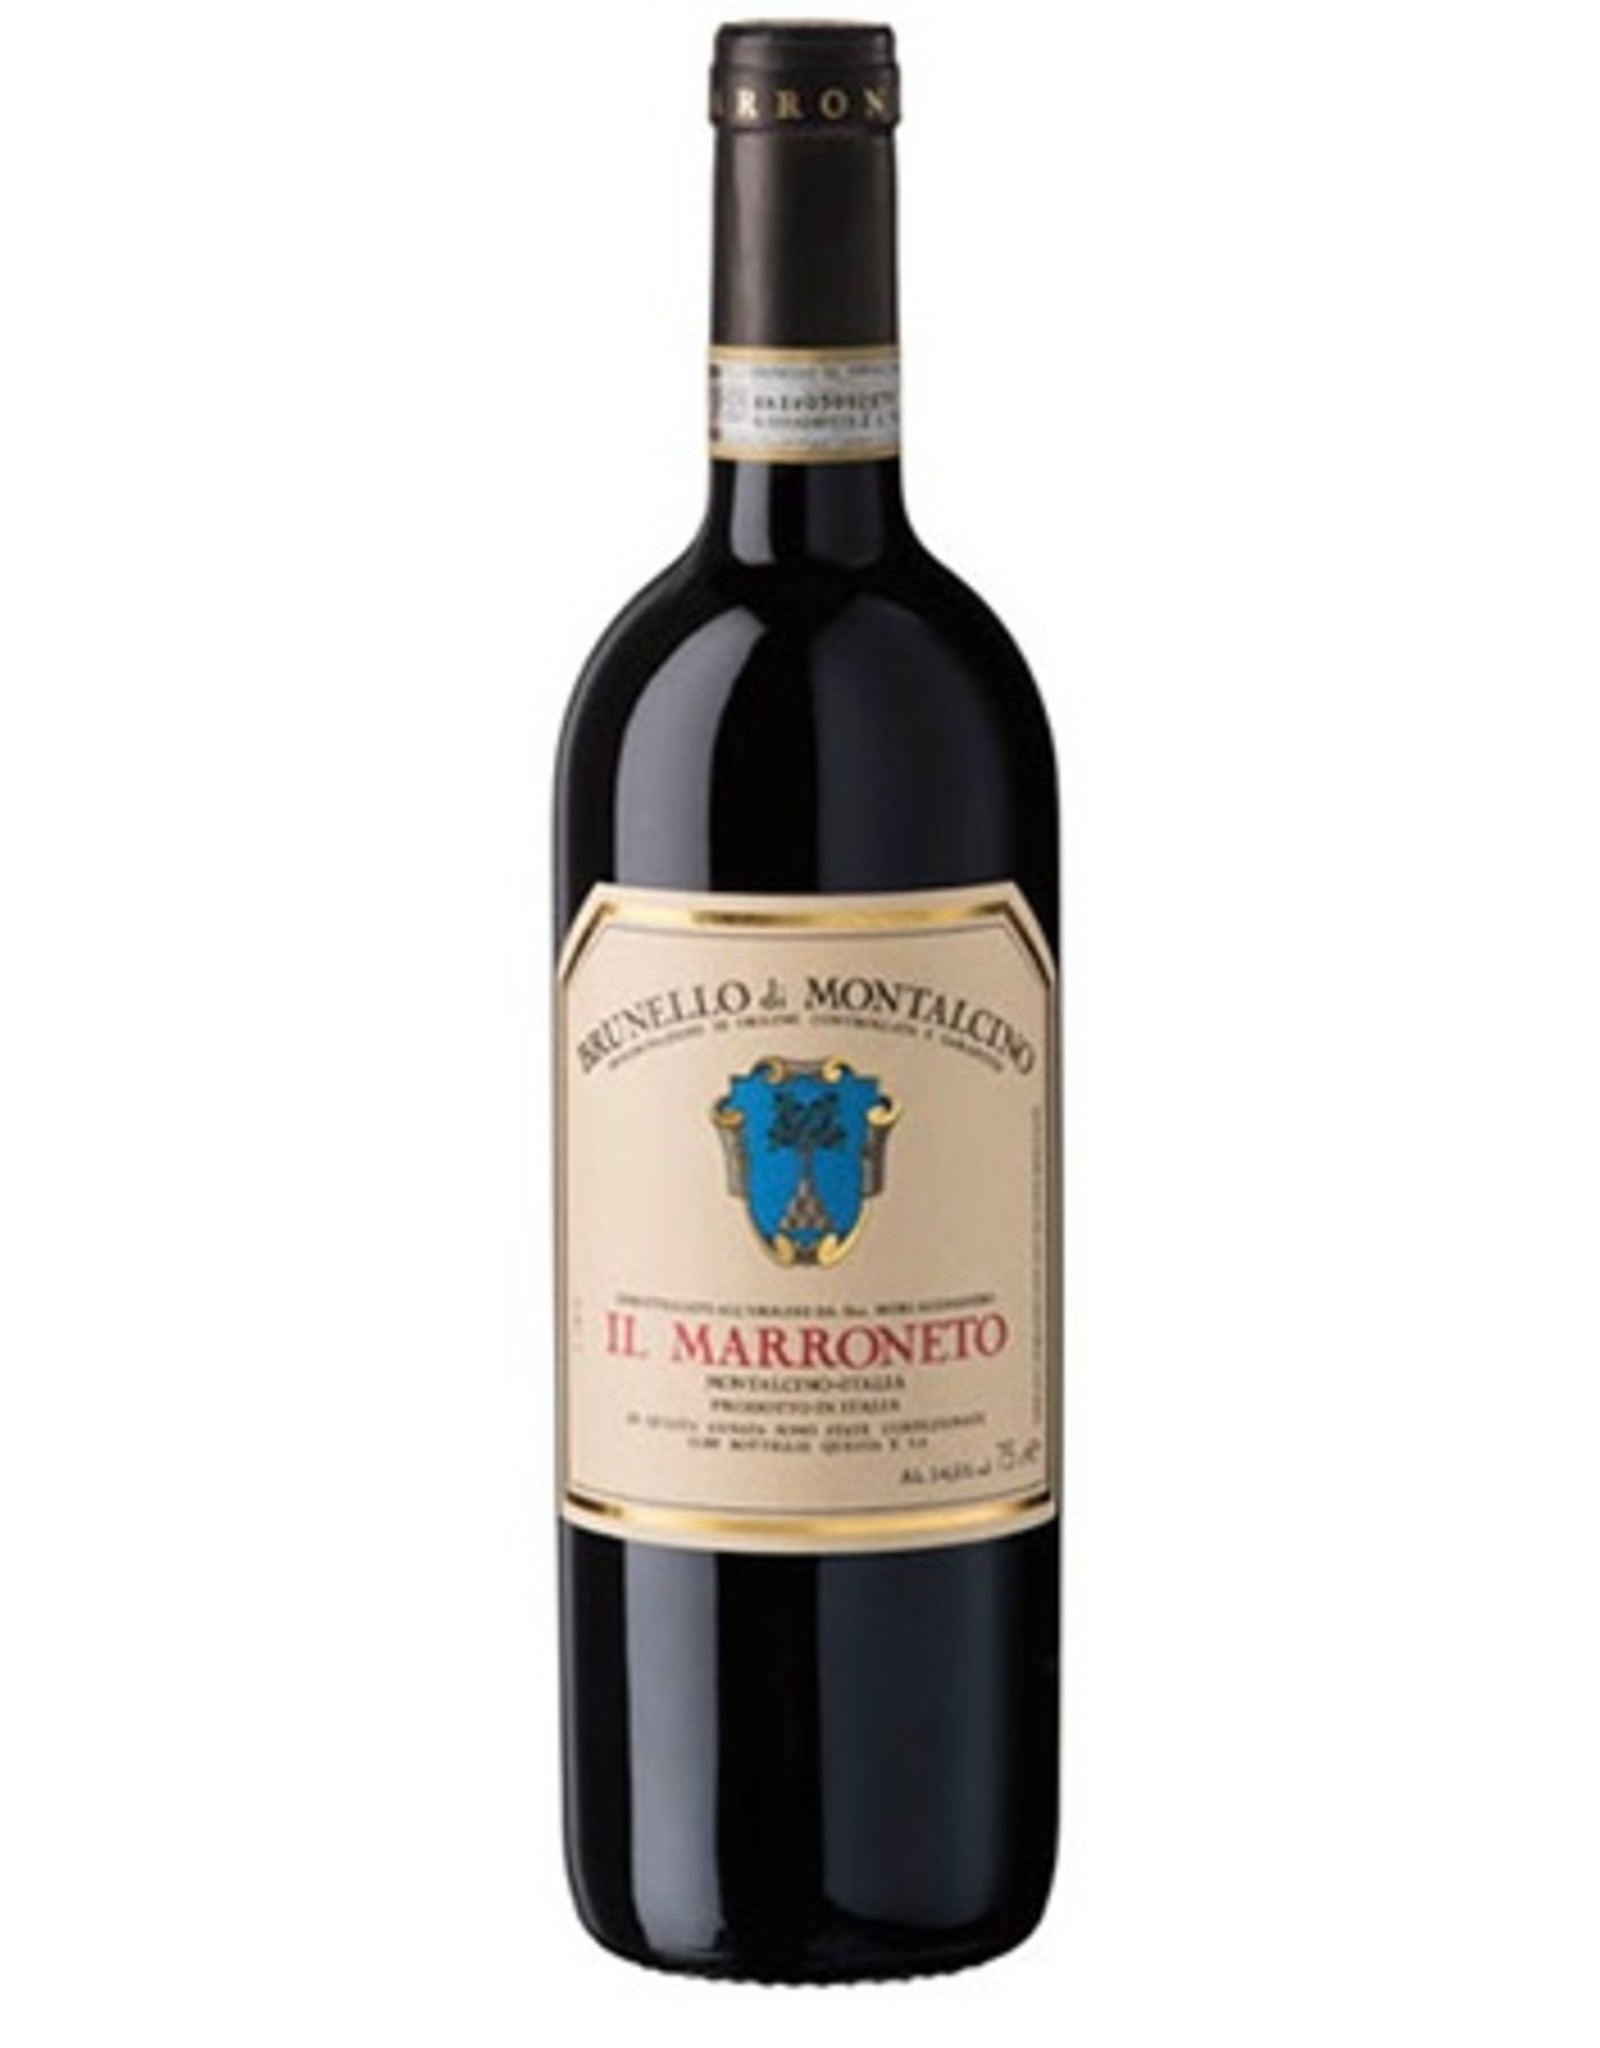 Marroneto Brunello di Montalcino 2015